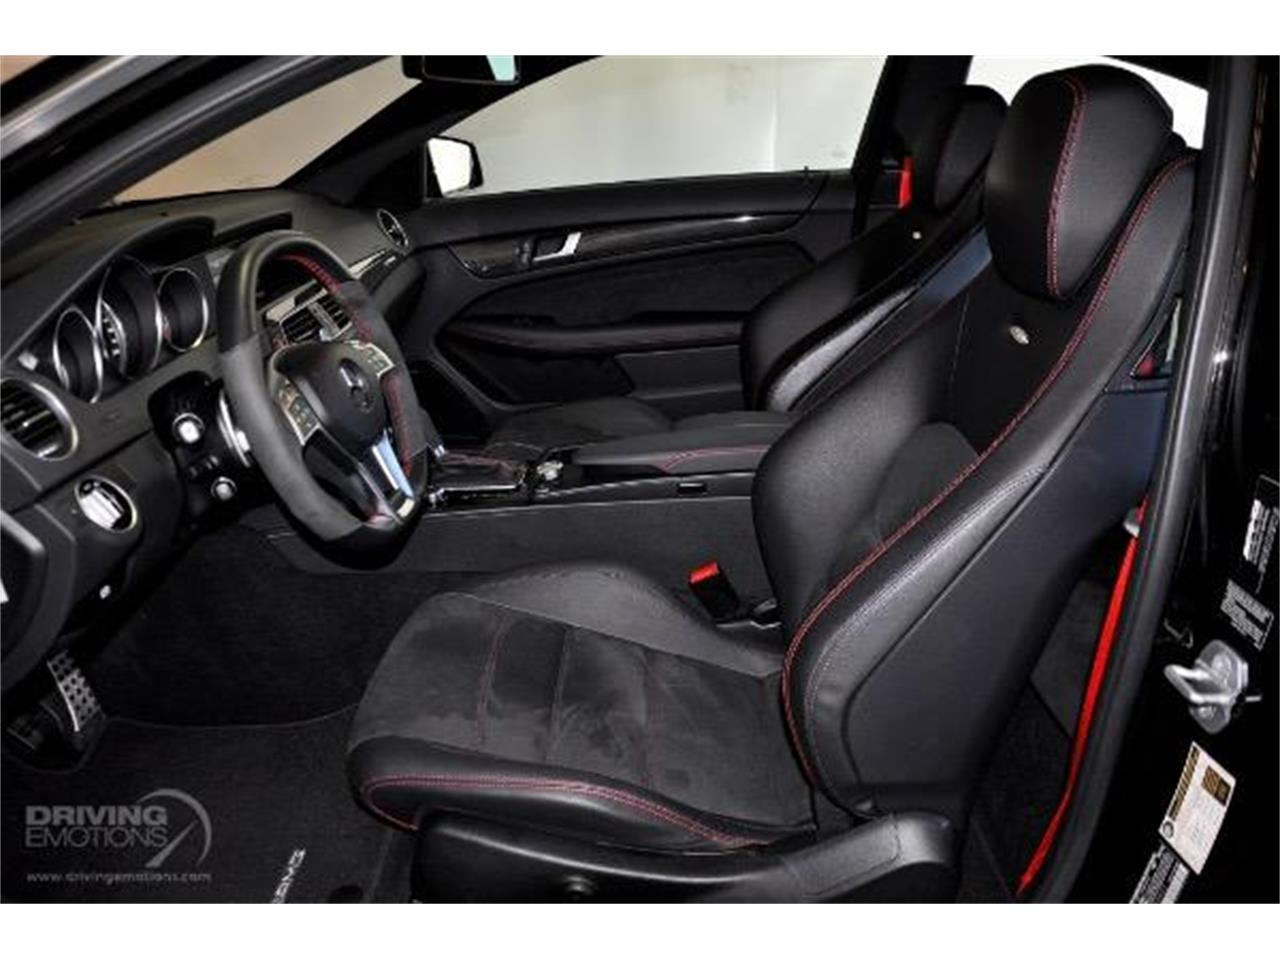 2013 Mercedes-Benz C63 AMG for sale in West Palm Beach, FL – photo 92